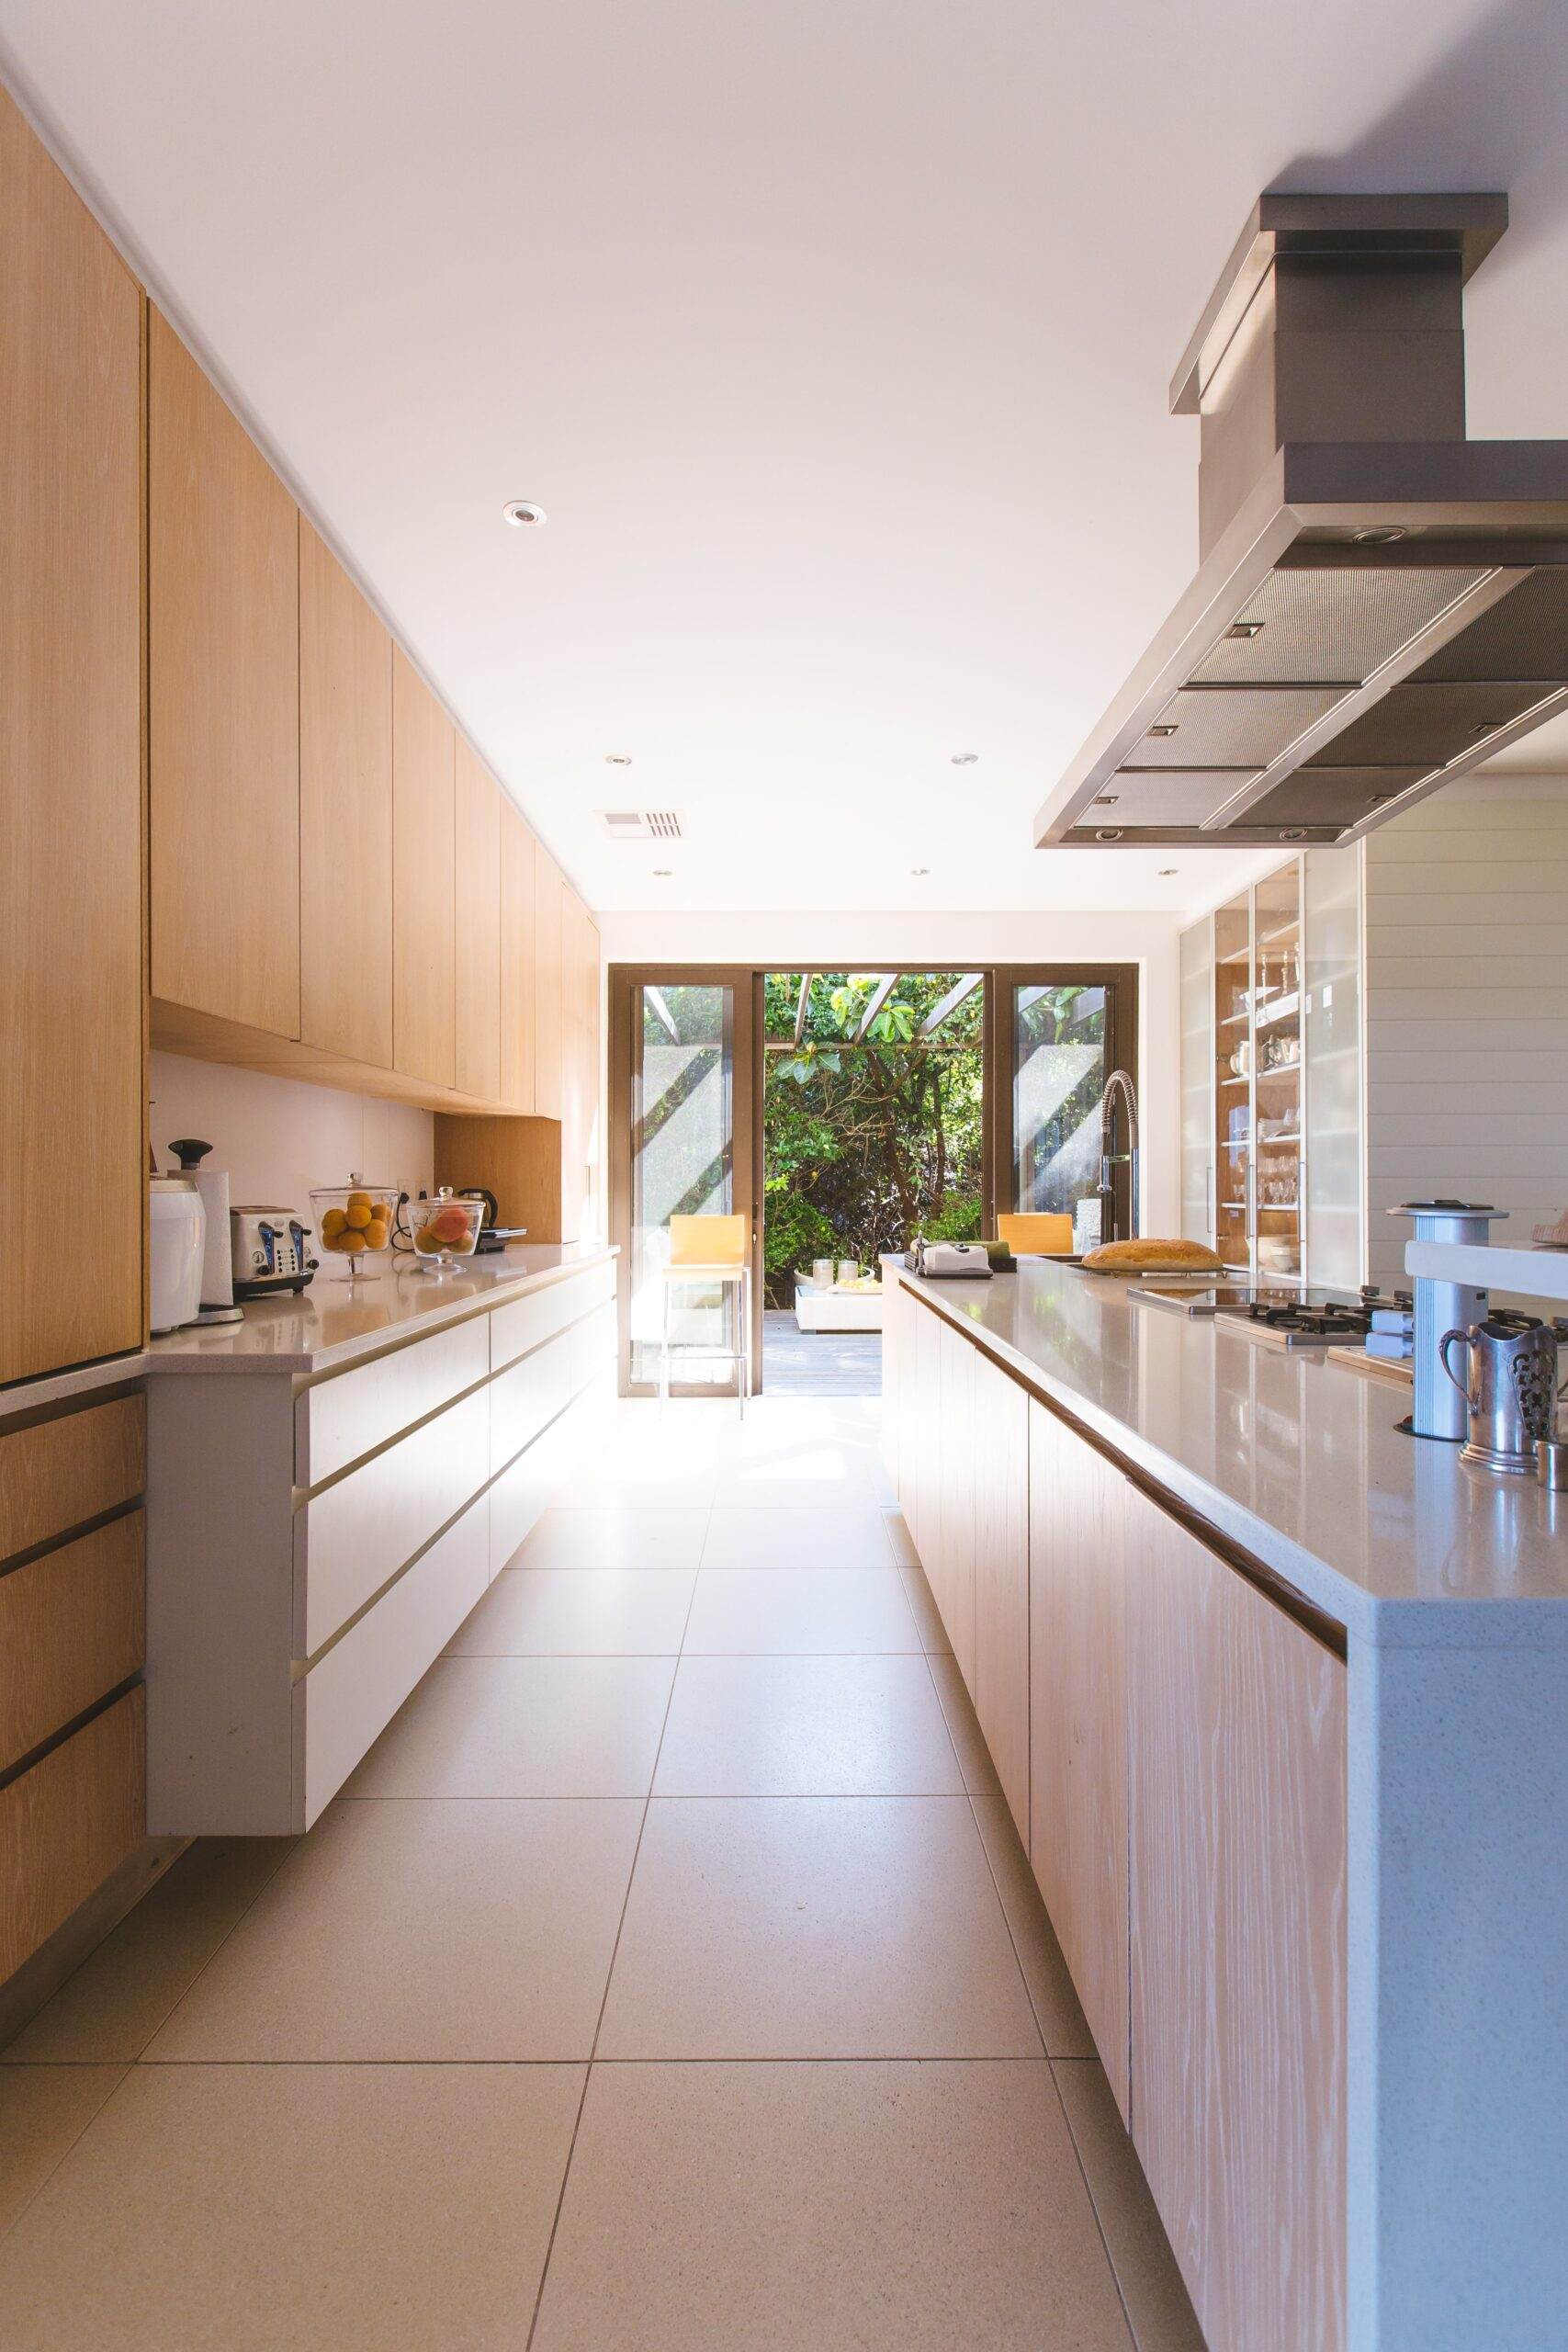 staging a home is one of the task that can be handled by A Clear Path as an A+ accredited by NASMM senior move manager